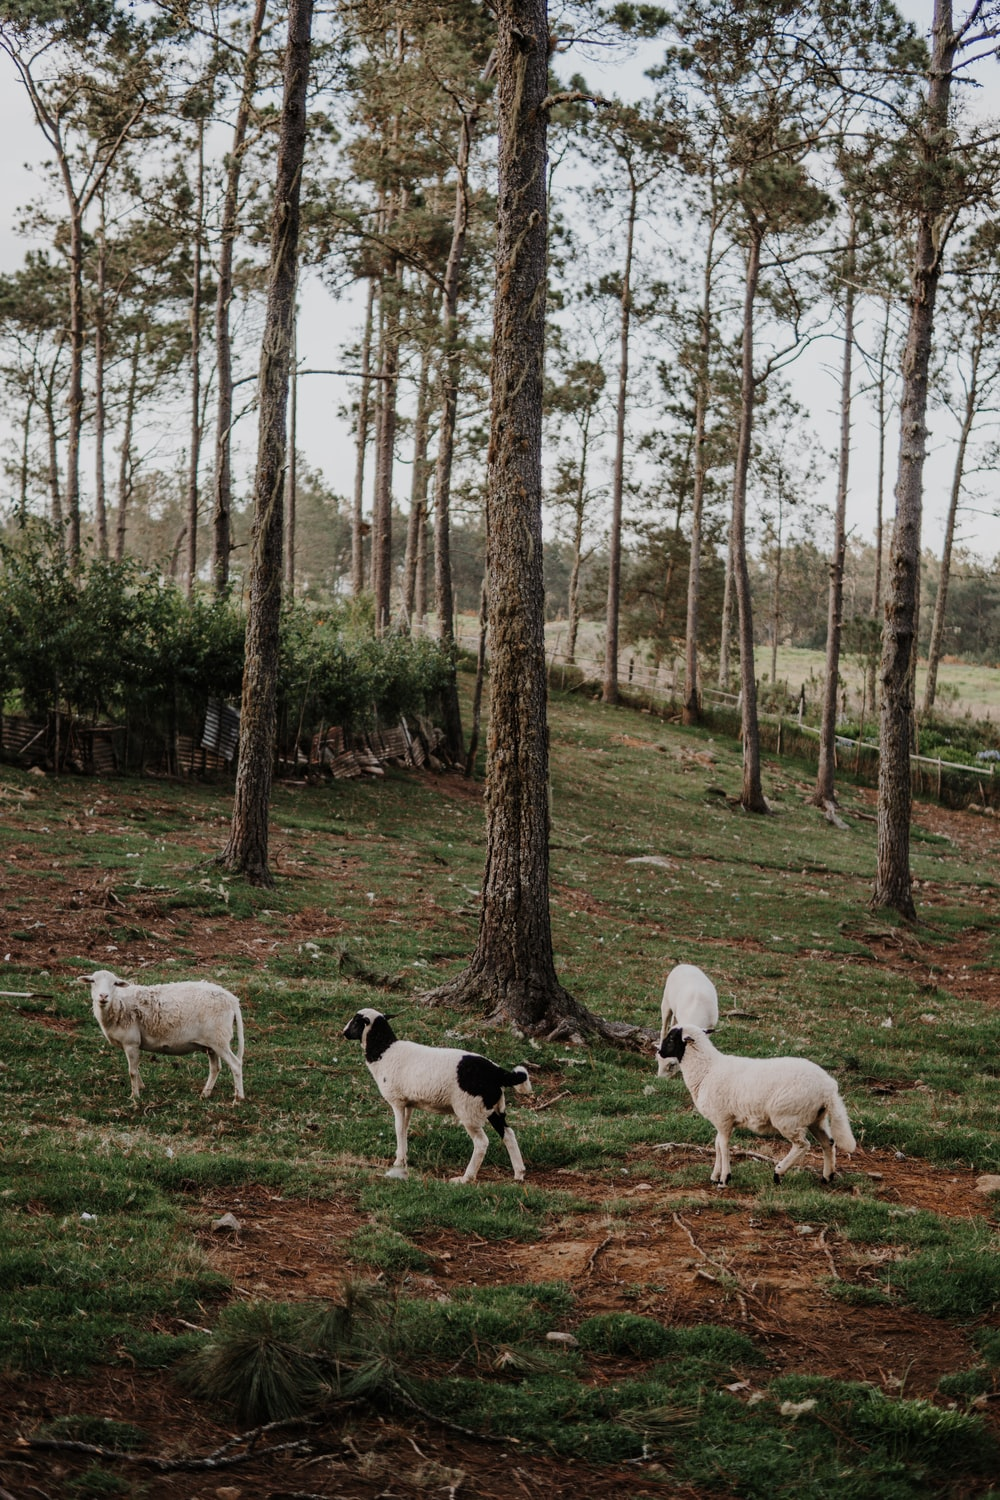 white and black goats on green grass field